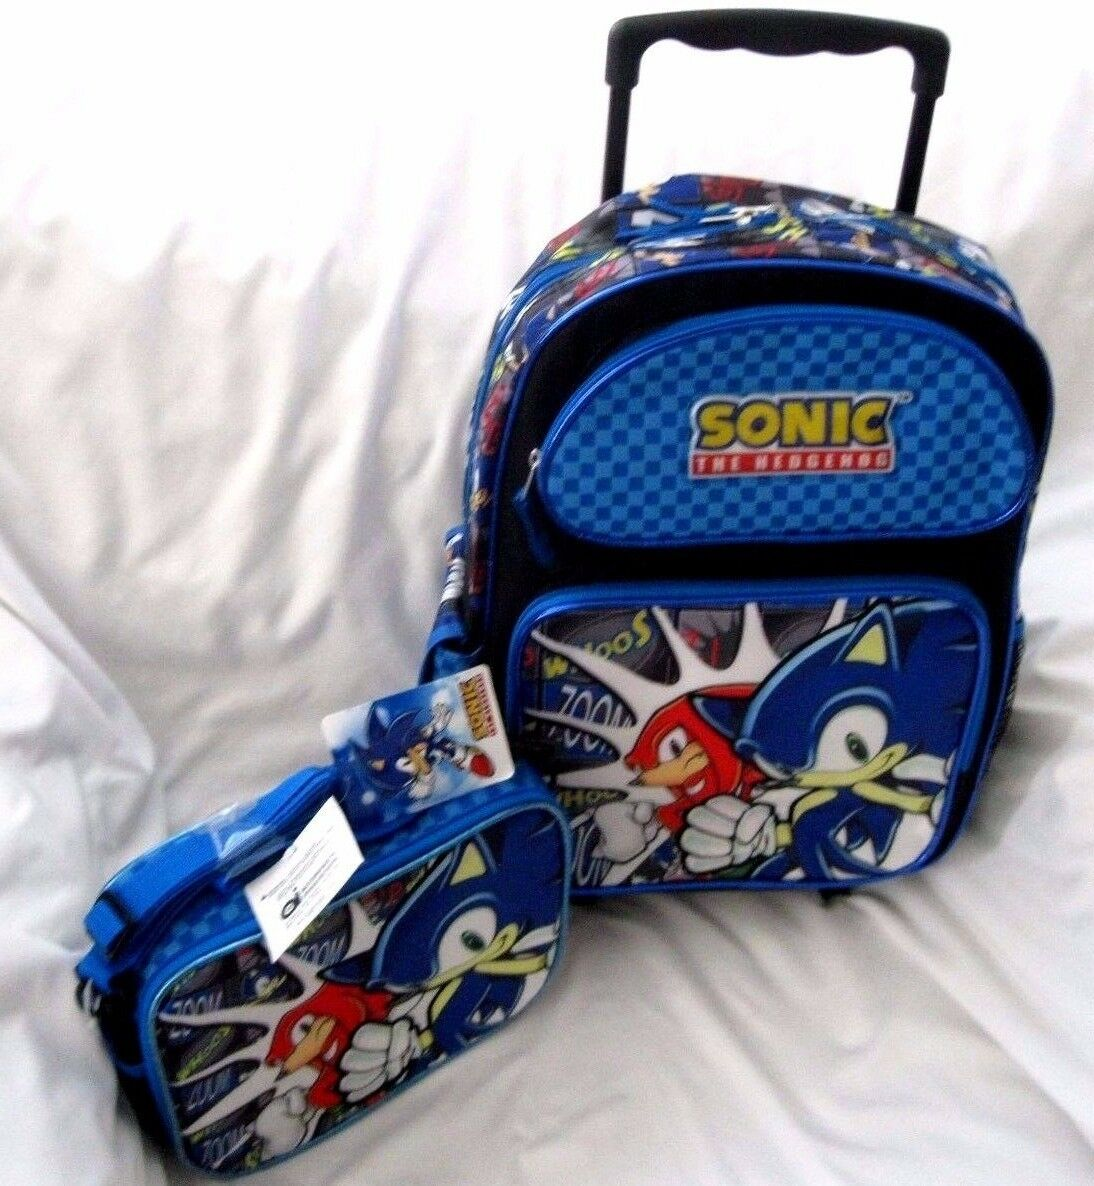 Sonic The Hedgehog Whoos Zoom 16 Rolling Backpack Sonic Friends Lunchbox Set 88308362341 Ebay